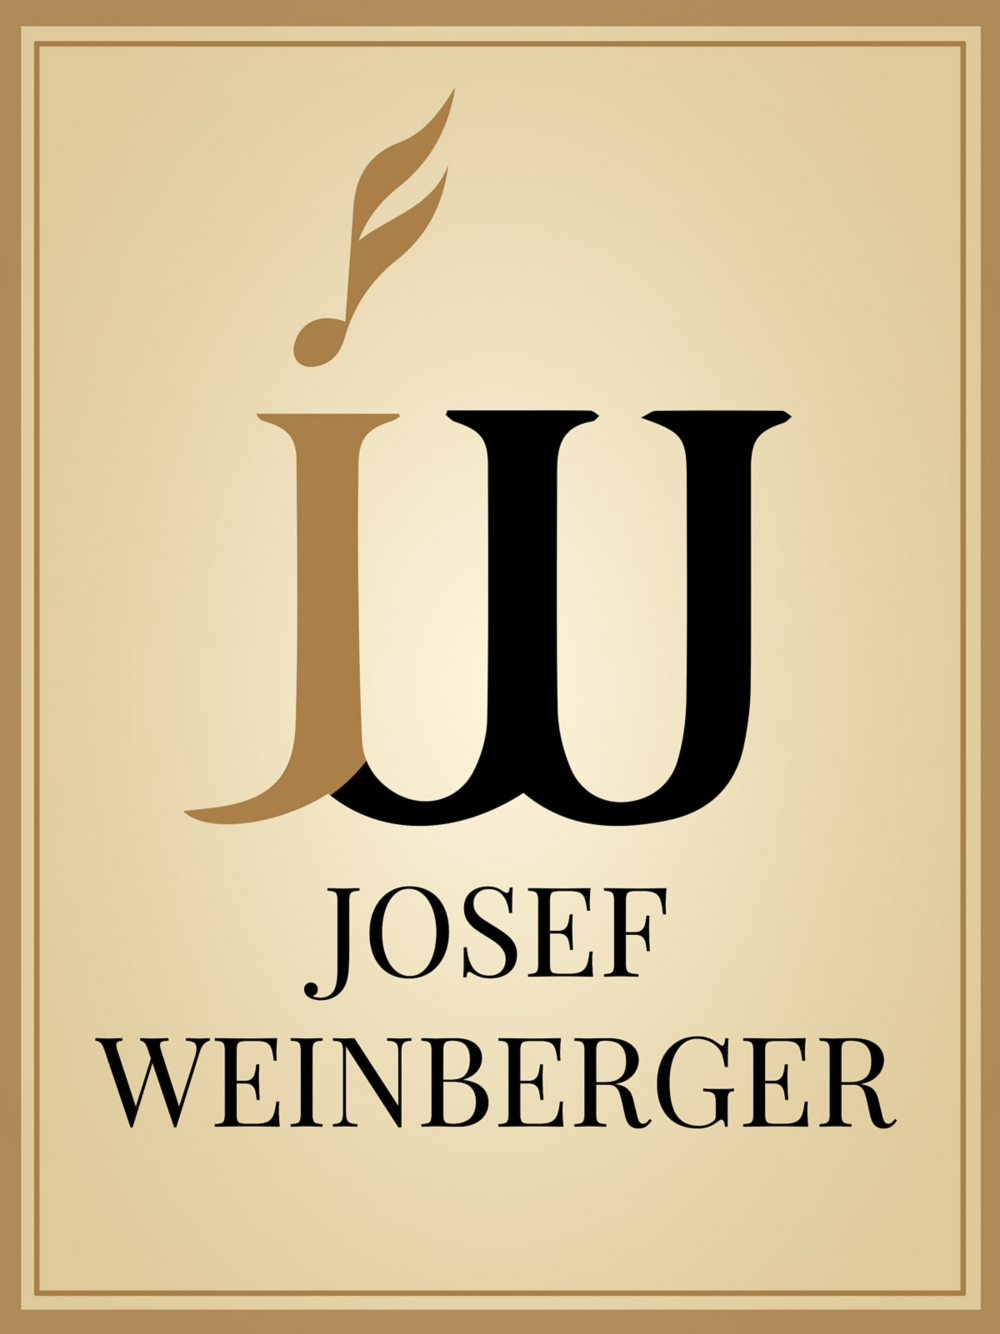 Joseph Weinberger Arabica (A Musical Entertainment for Soloists, Chorus, Narrator & Stage... by Joseph Weinberger